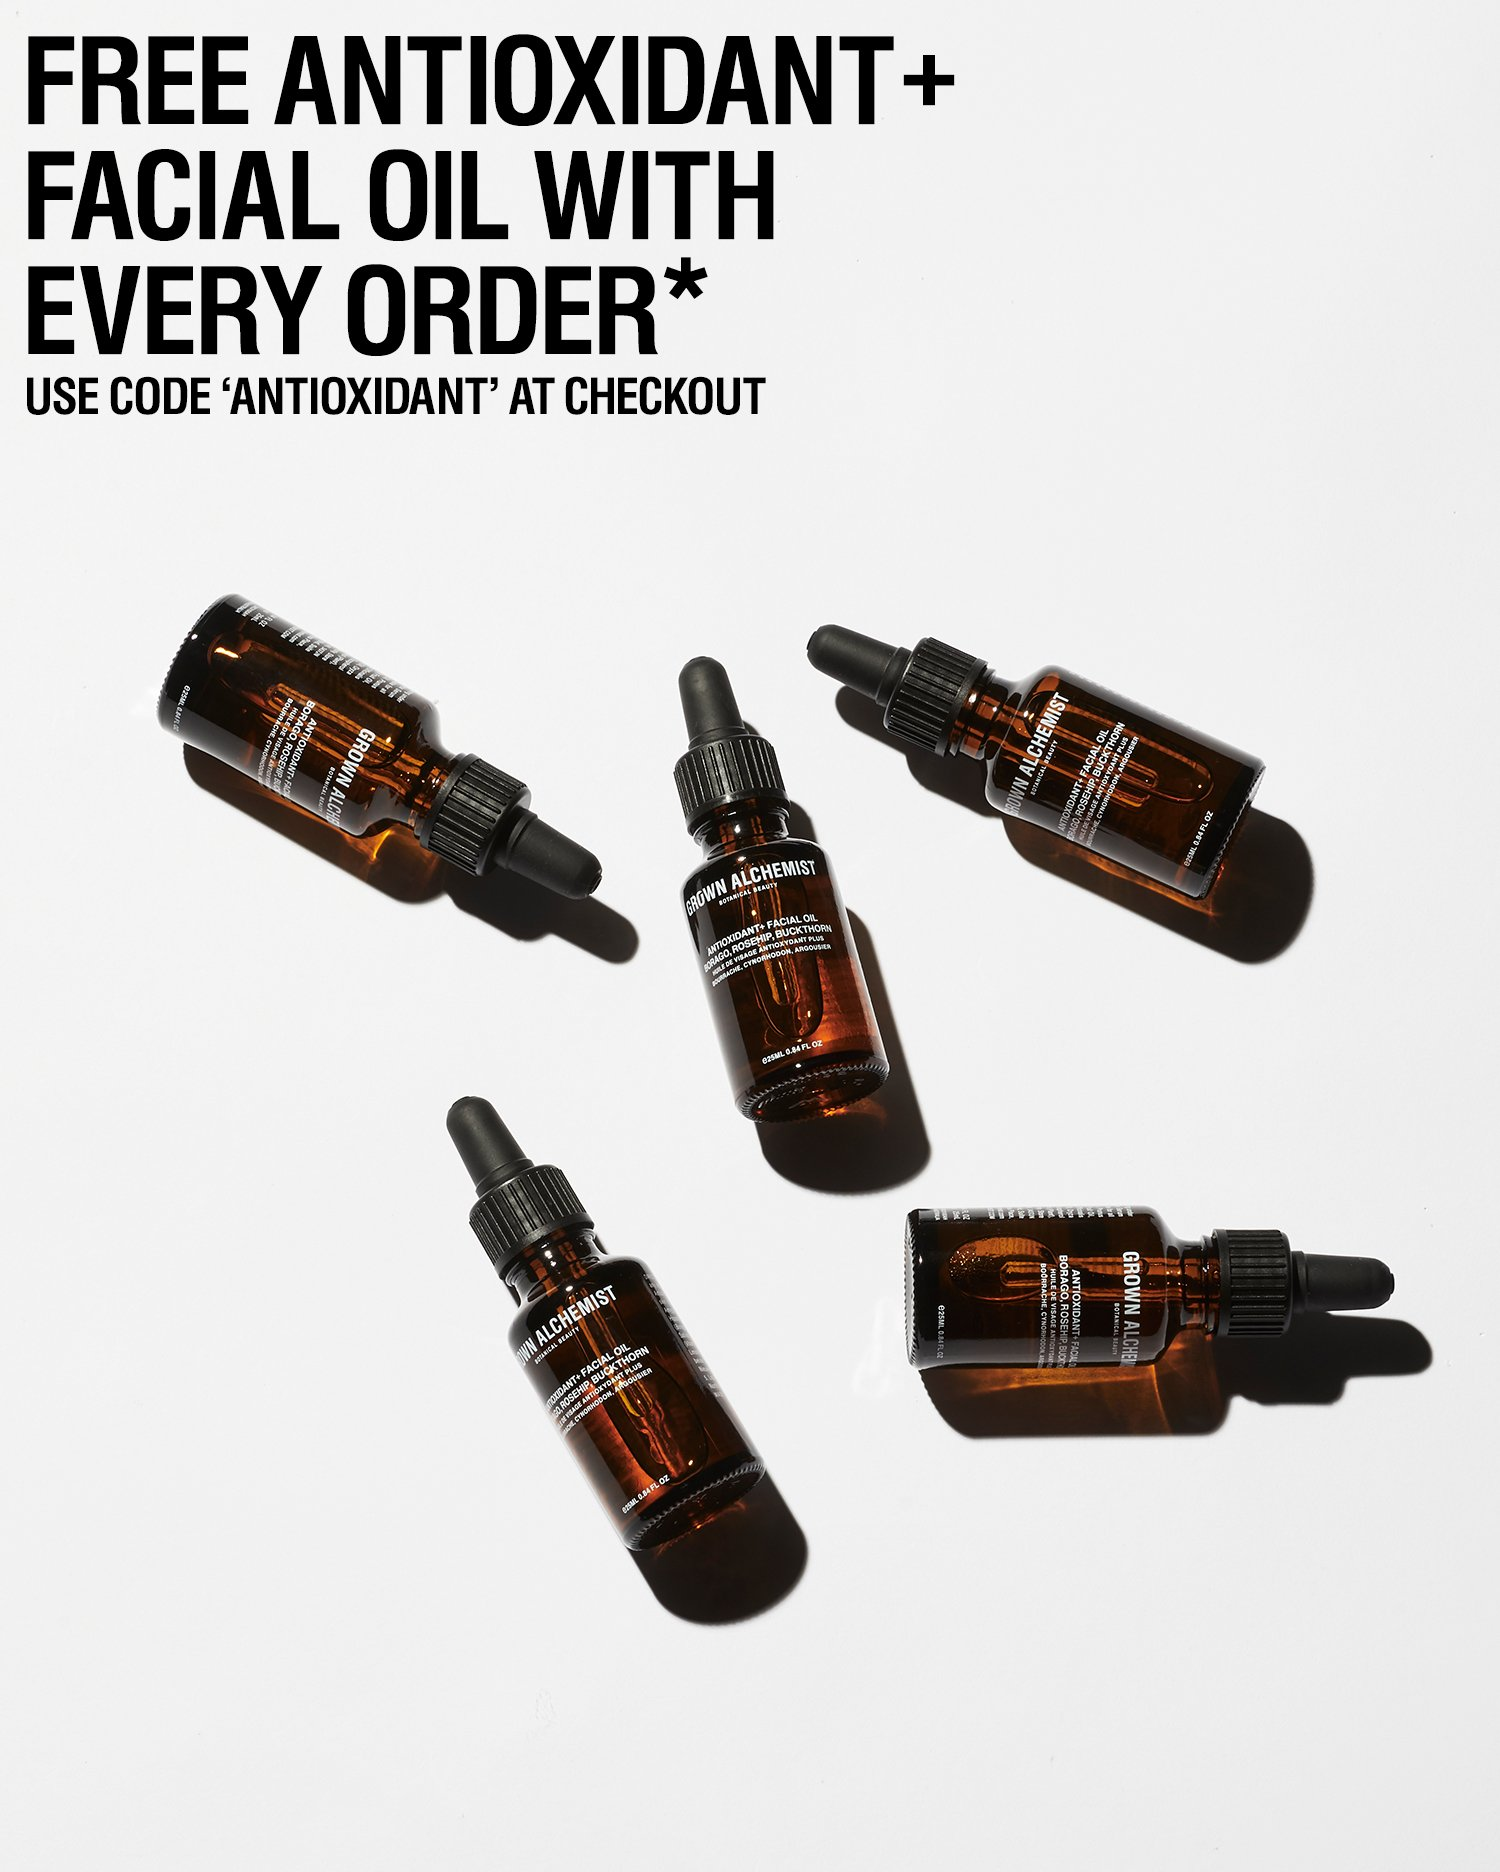 Free Antioxidant Facial Oil with all orders over $100